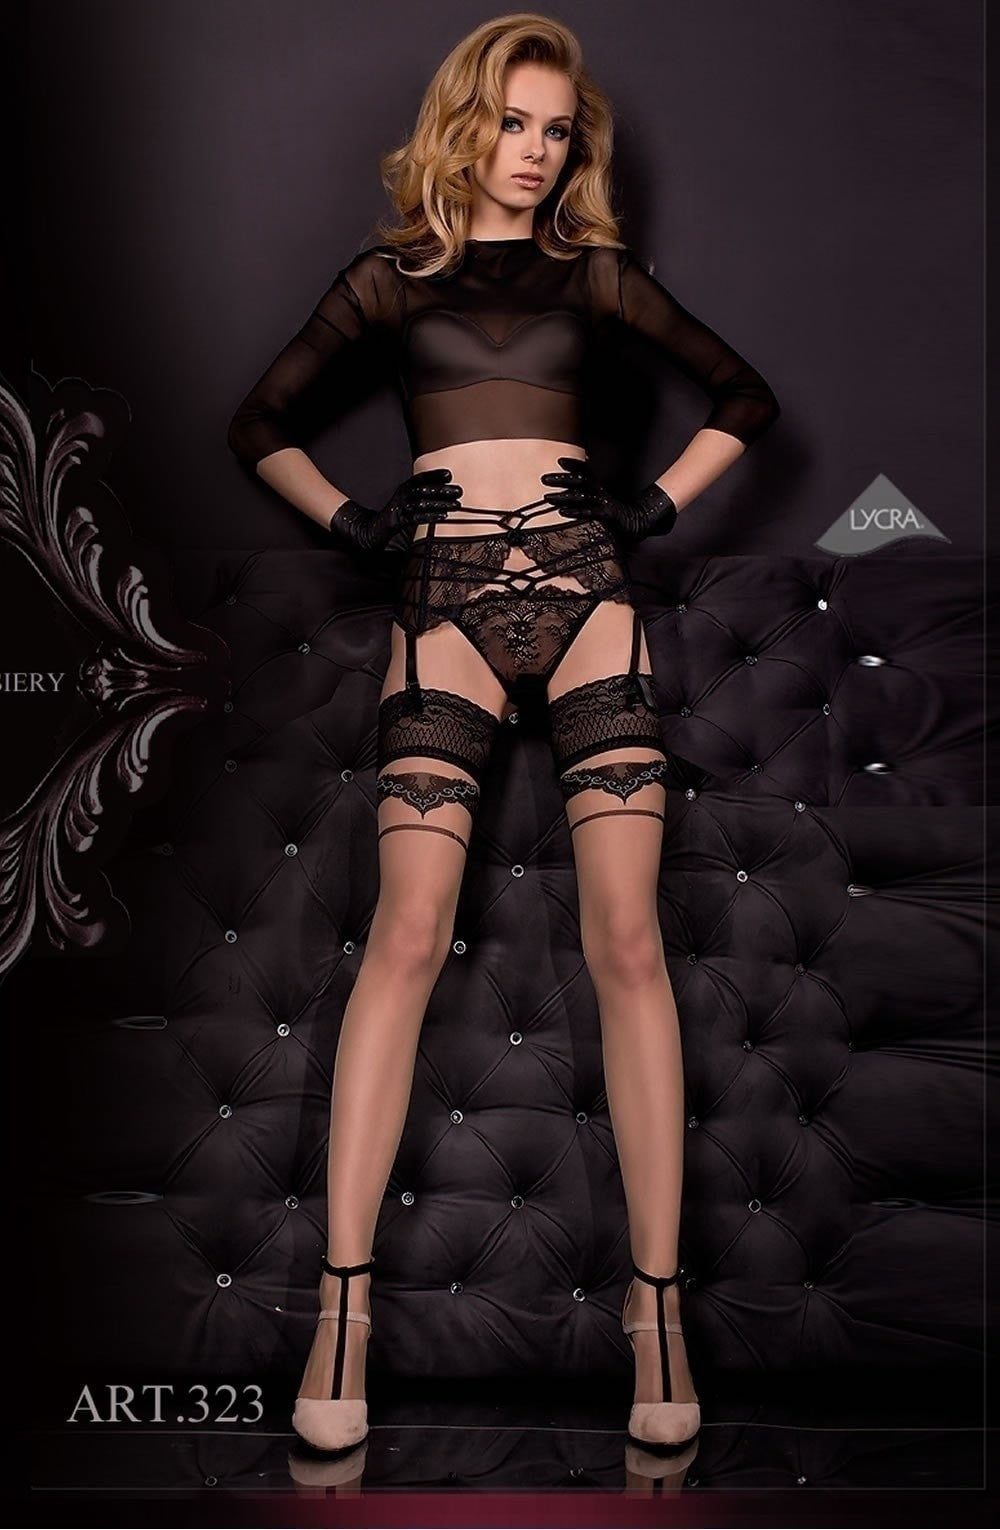 Ballerina Suspender Belt and String 324 (Black) - Suspender Belts - Ballerina - Charm and Lace Boutique